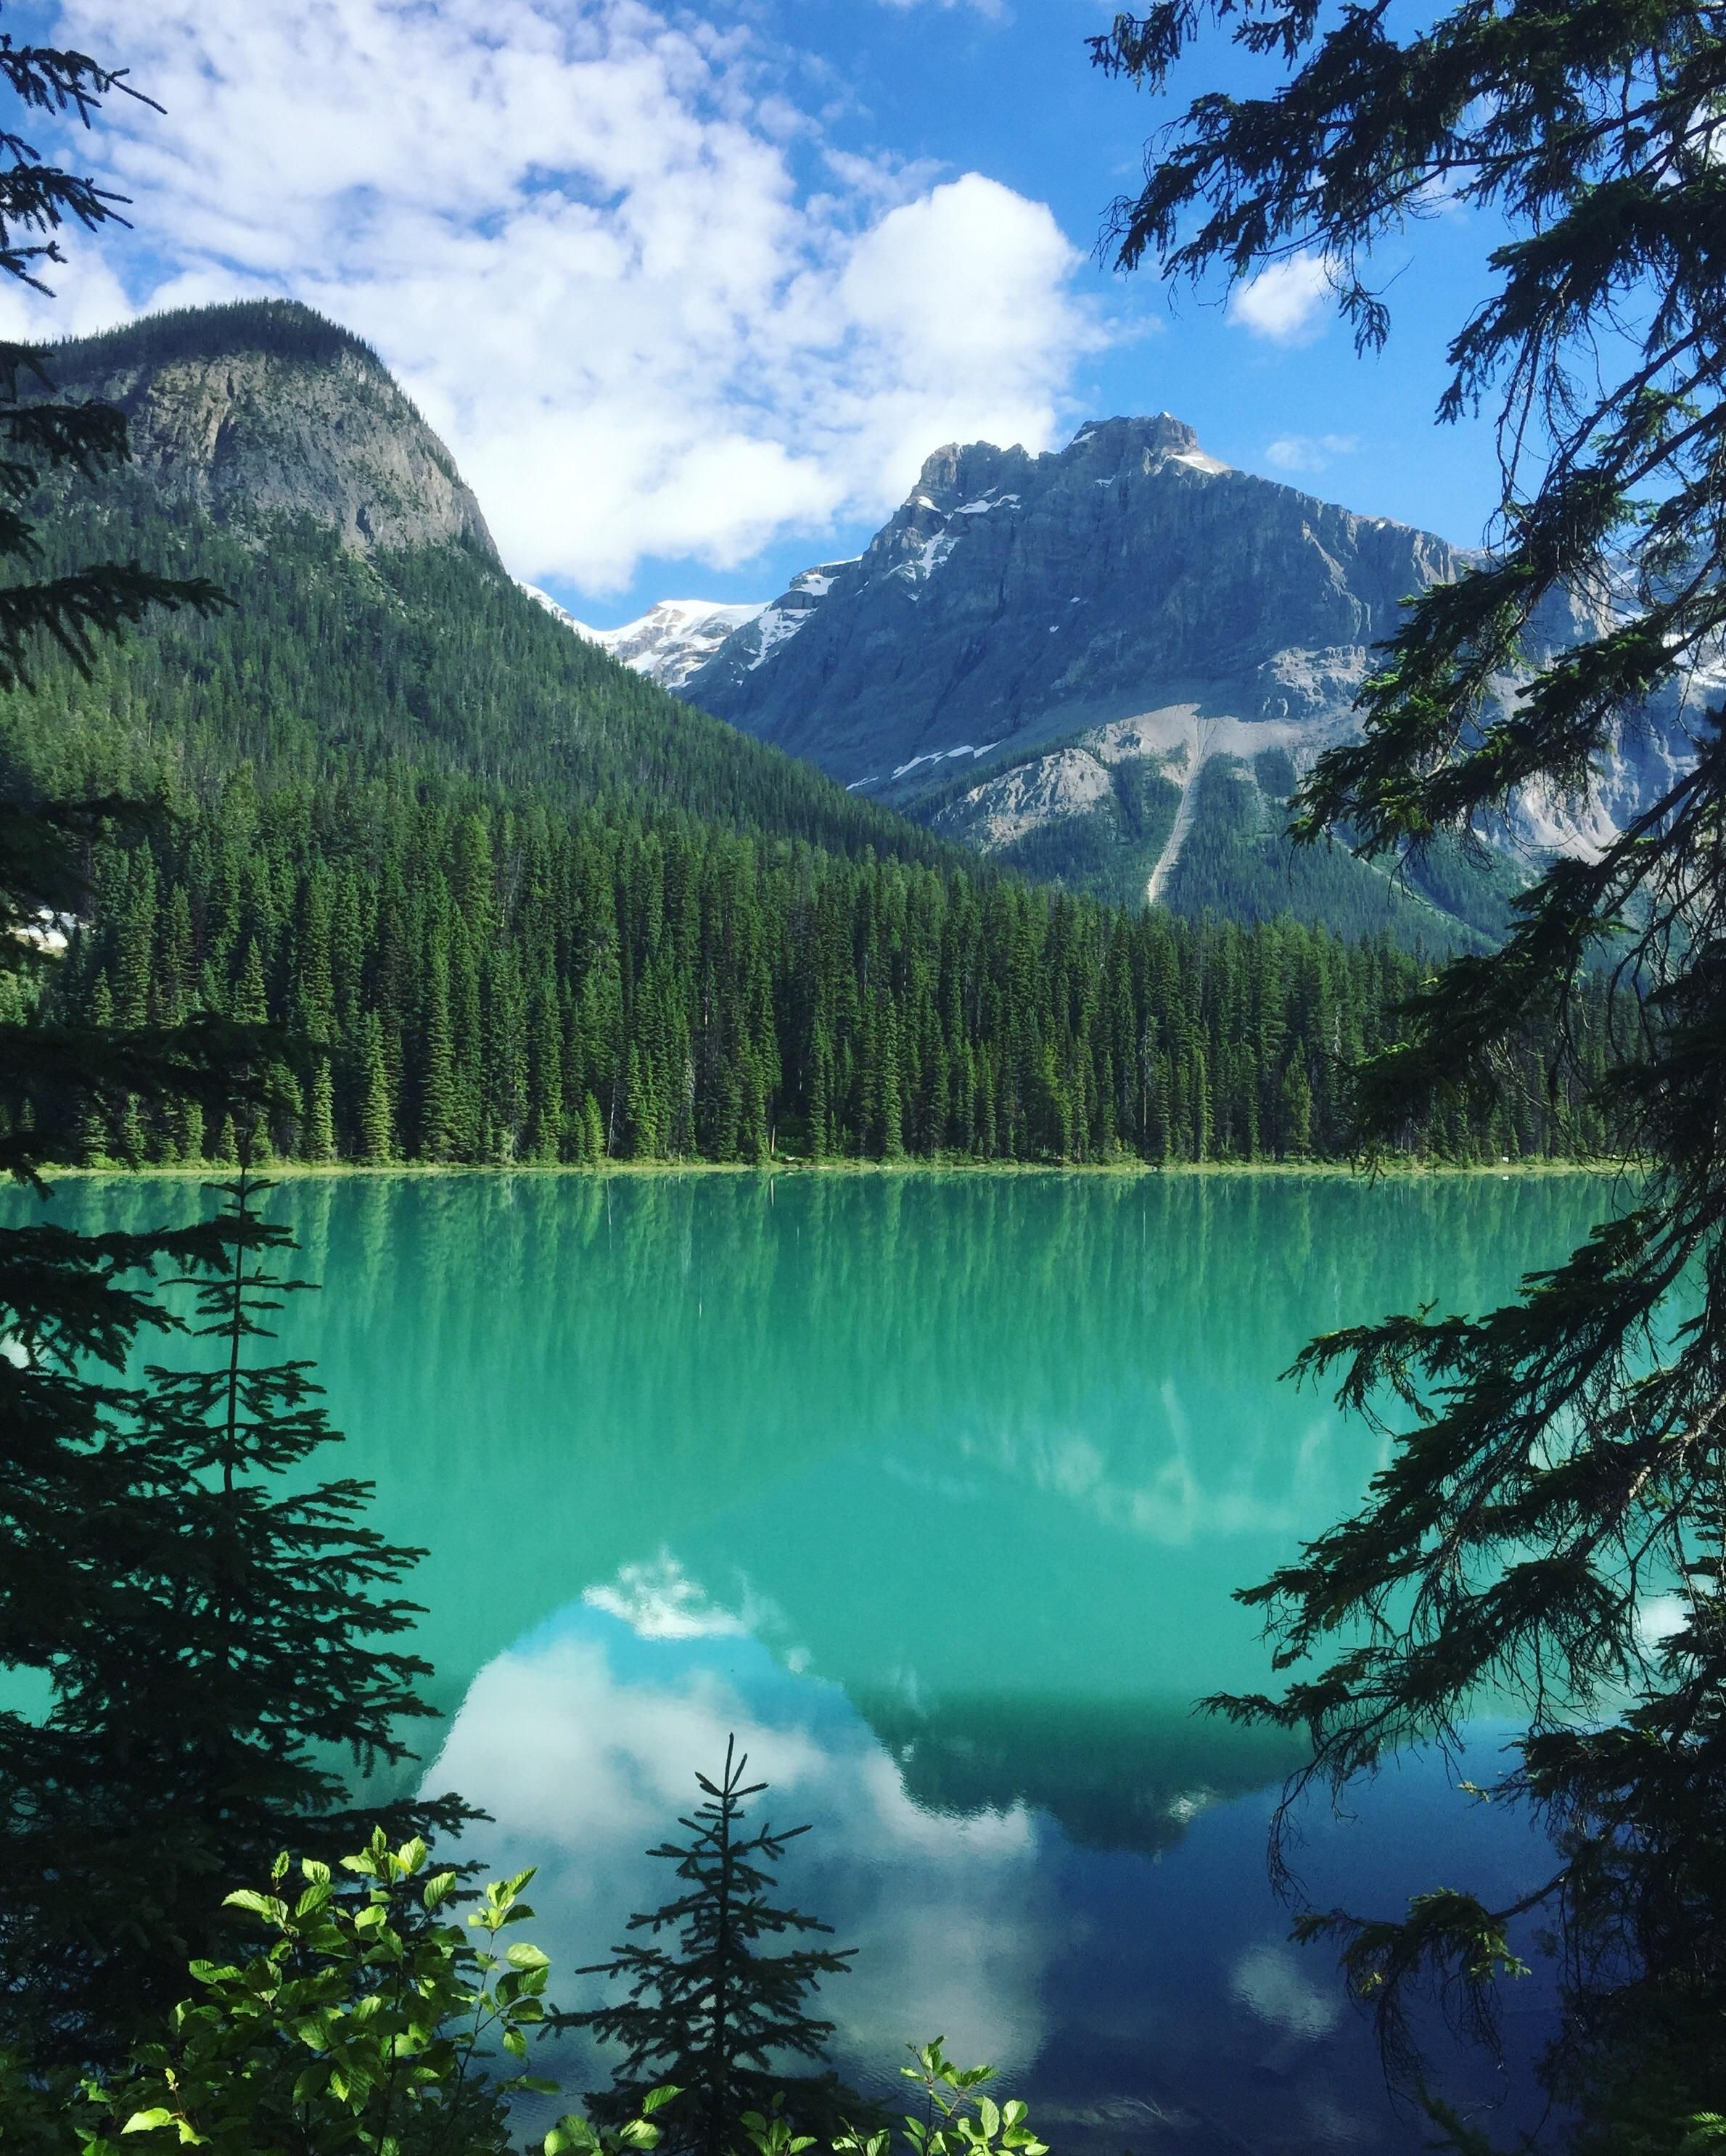 w emerald download tree nature mountains lake reflections wallpaper